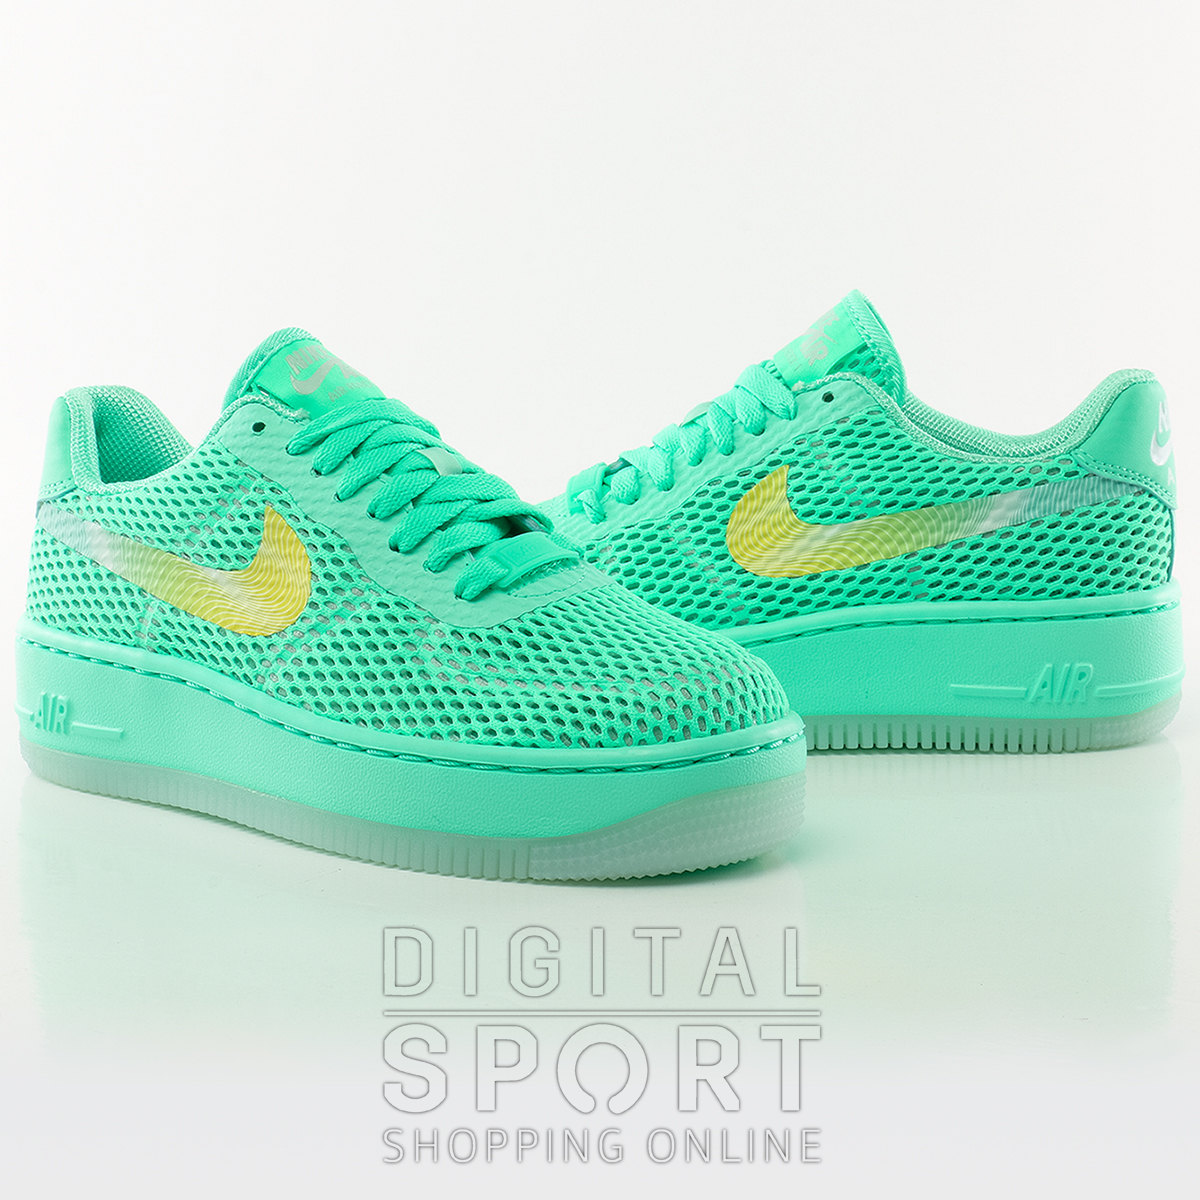 reputable site 4d675 1bcc8 ZAPATILLAS W AIR FORCE 1 LOW UPSTEP nike